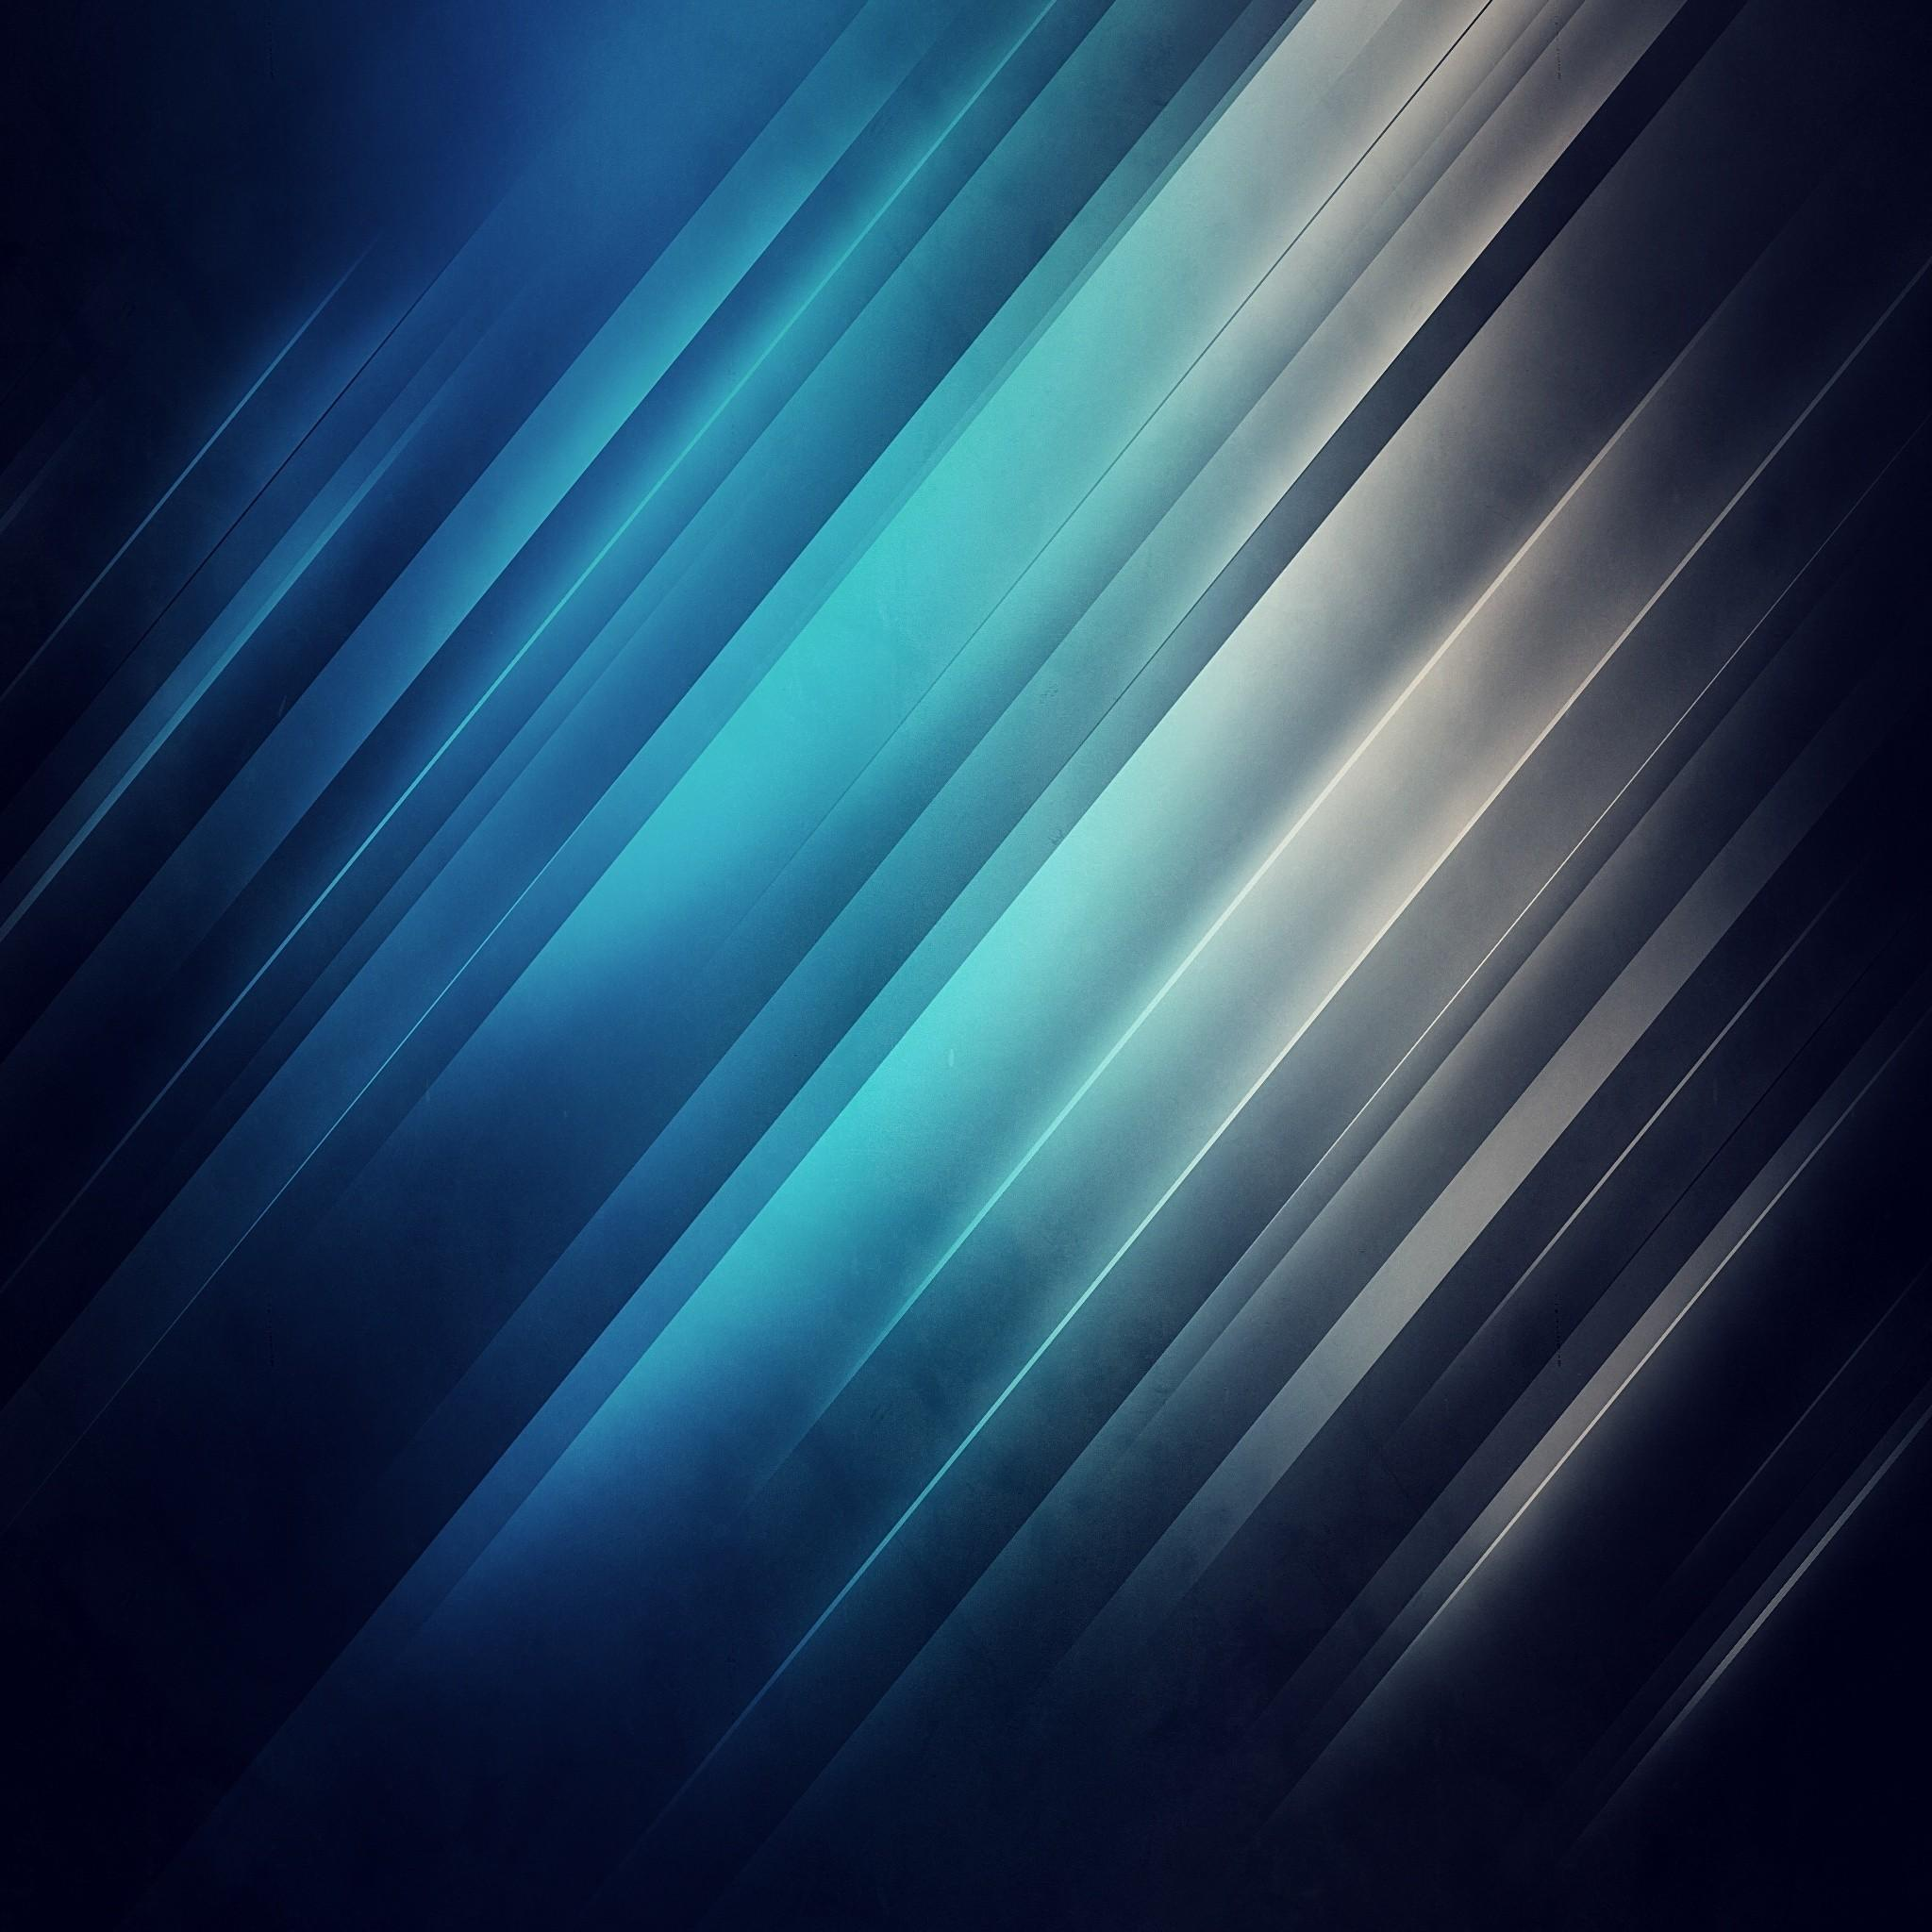 background ID03   Abstract New iPad iPad 3 iPad 4 Wallpapers HD 2048x2048